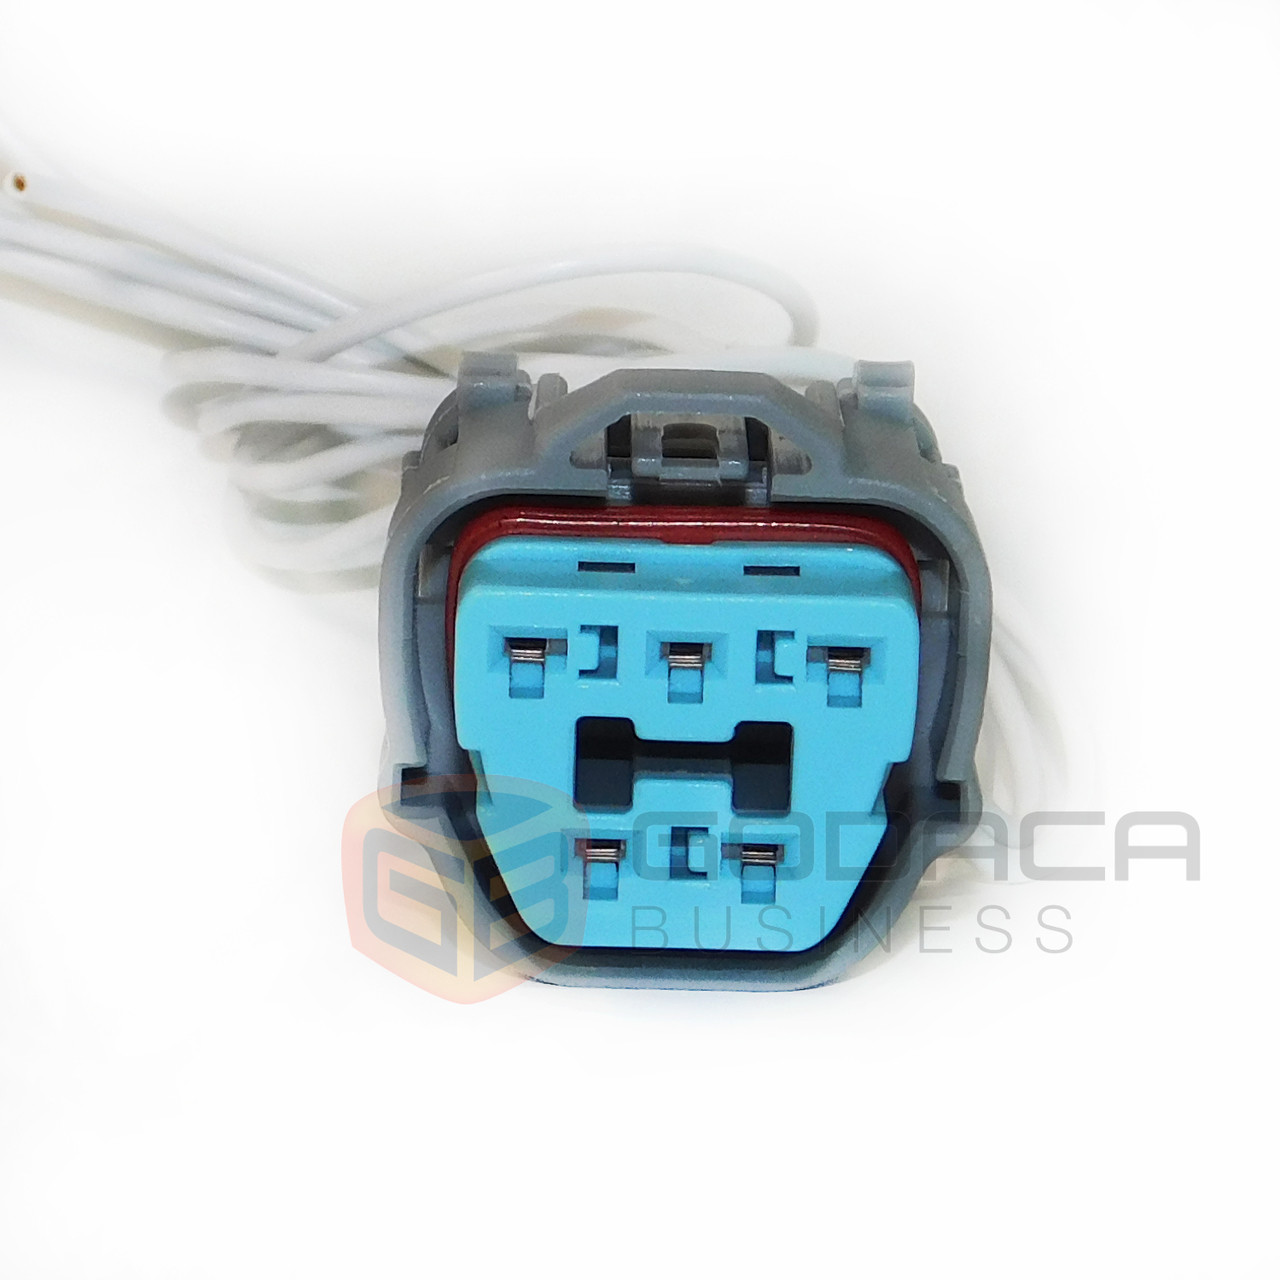 medium resolution of connector fuel pump harness pigtail for honda civic accord 5 way with wire godaca llc